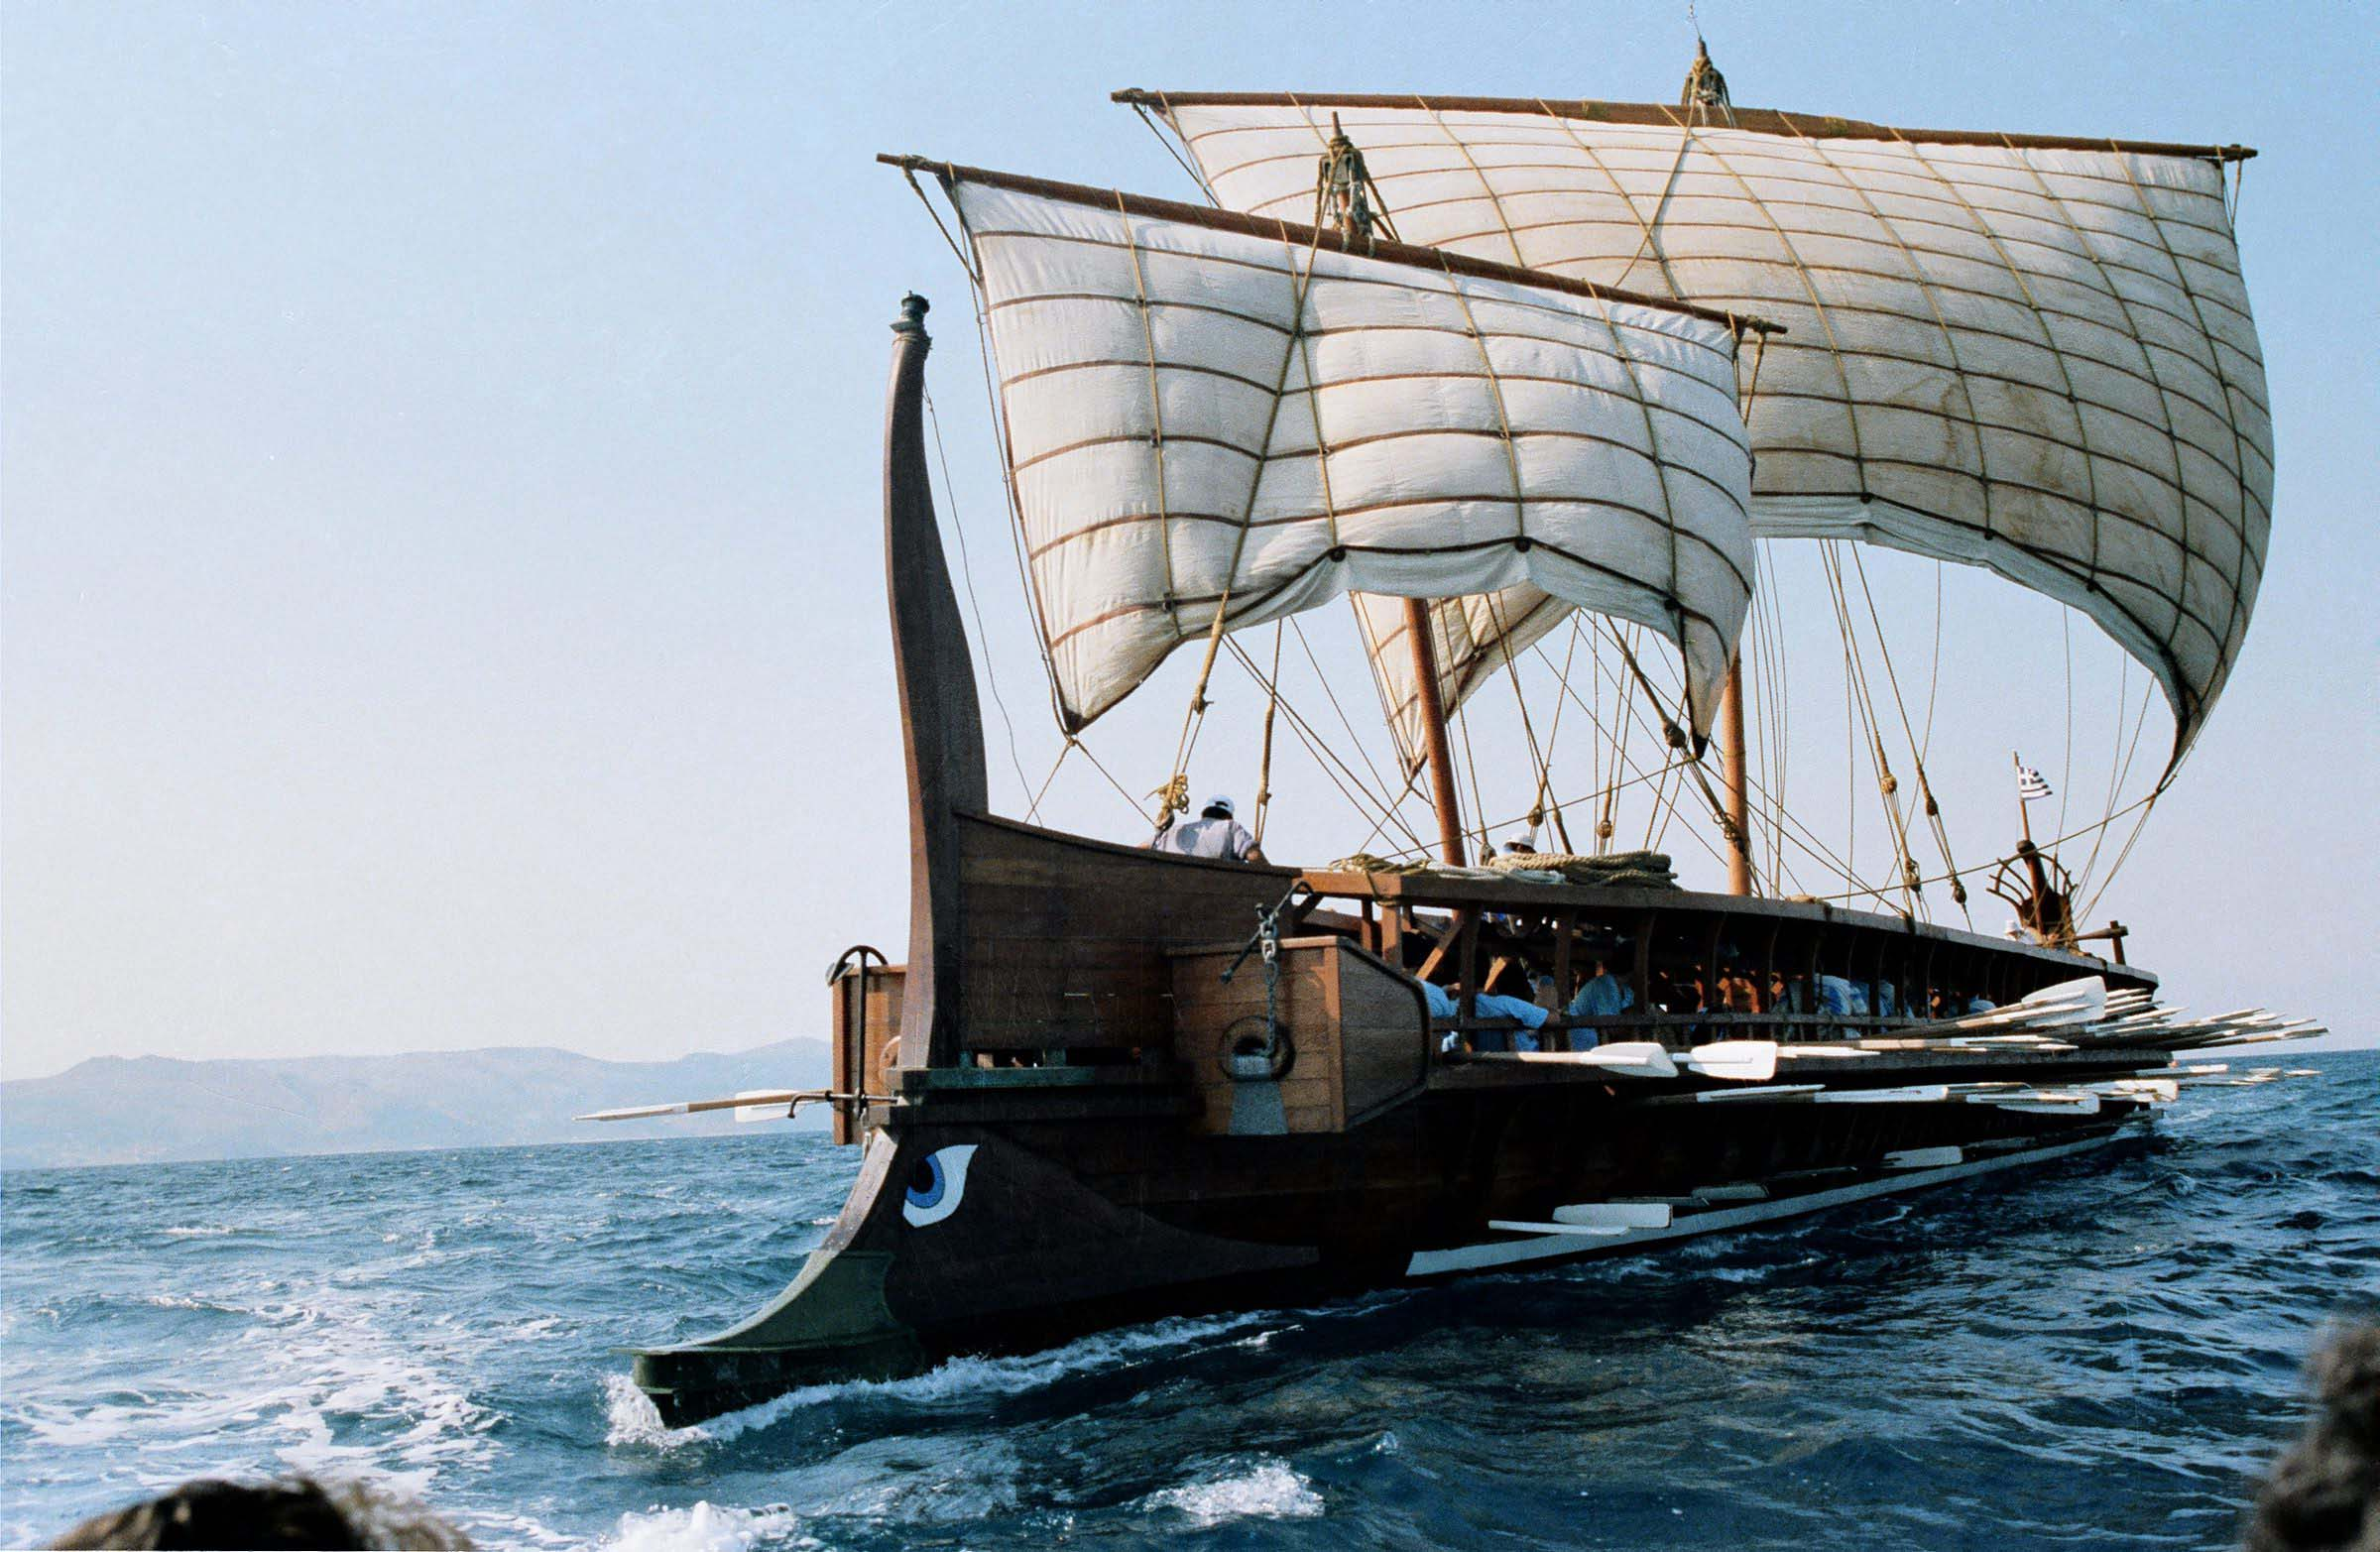 A photo of the Olympia, a replica Trireme from the Greek Navy.